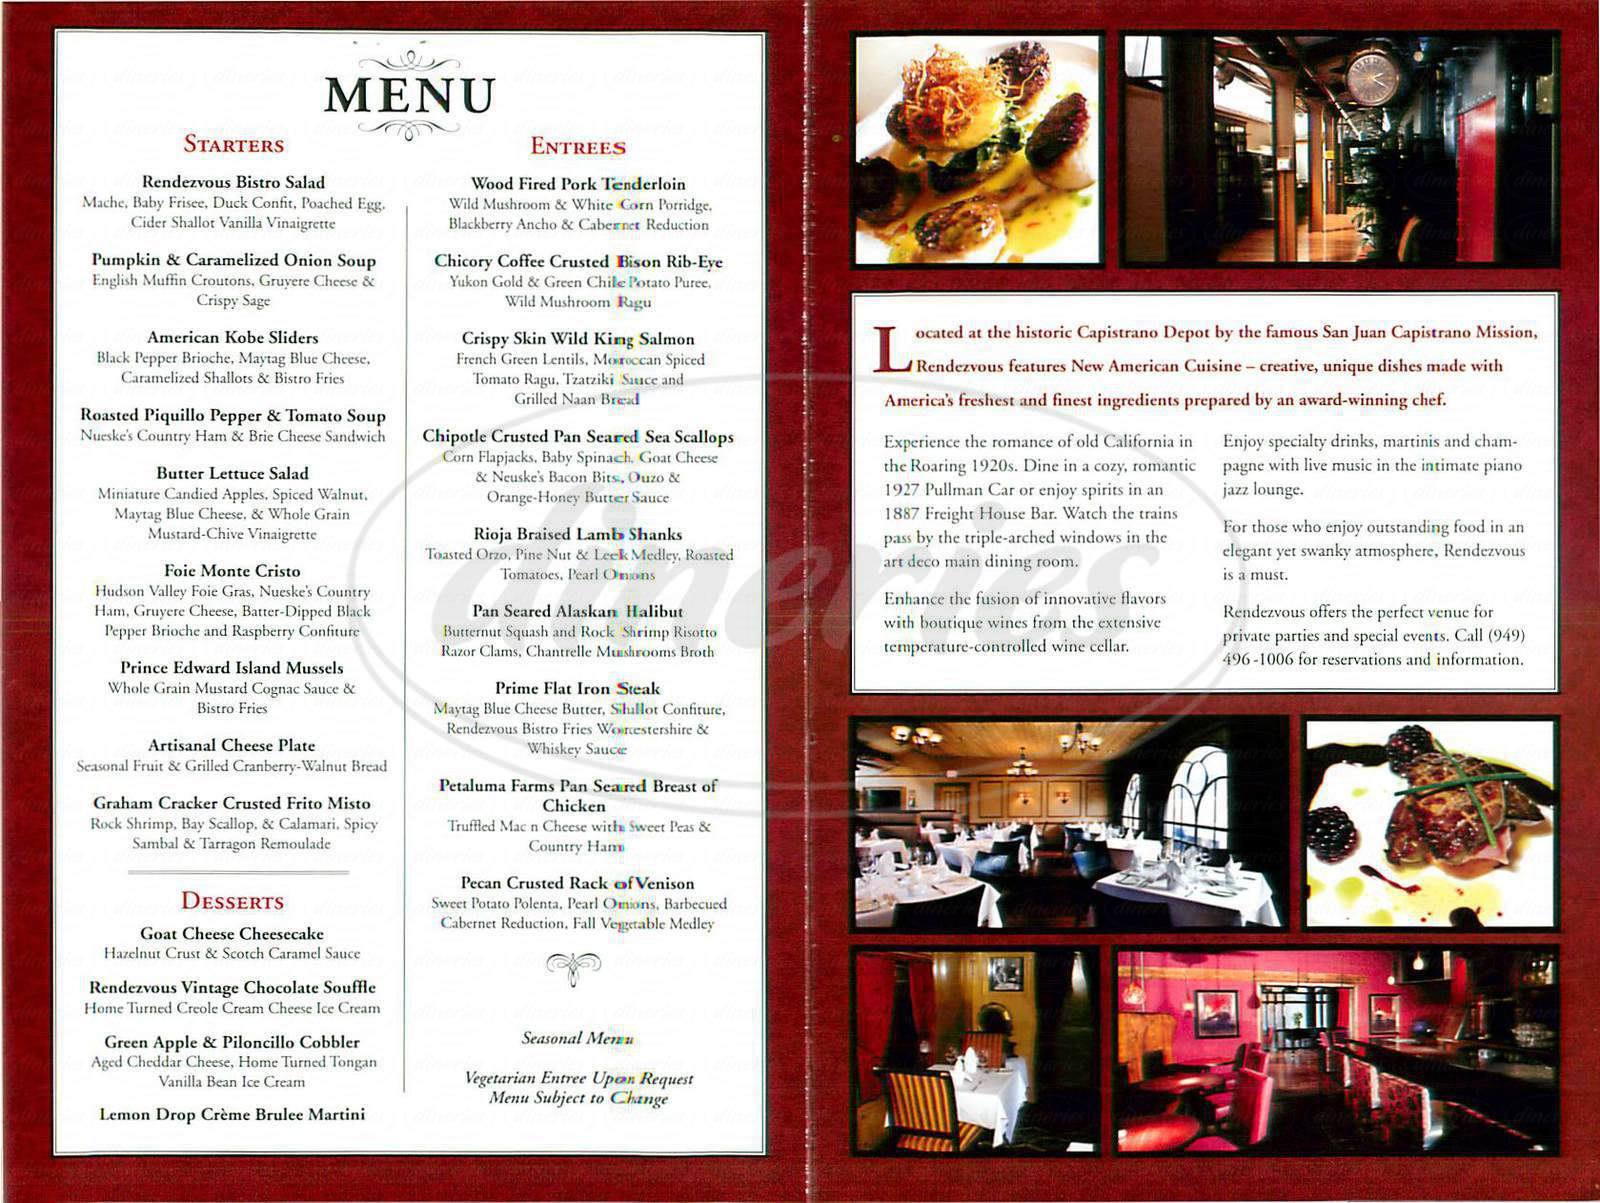 Big menu for Rendezvous, San Juan Capistrano